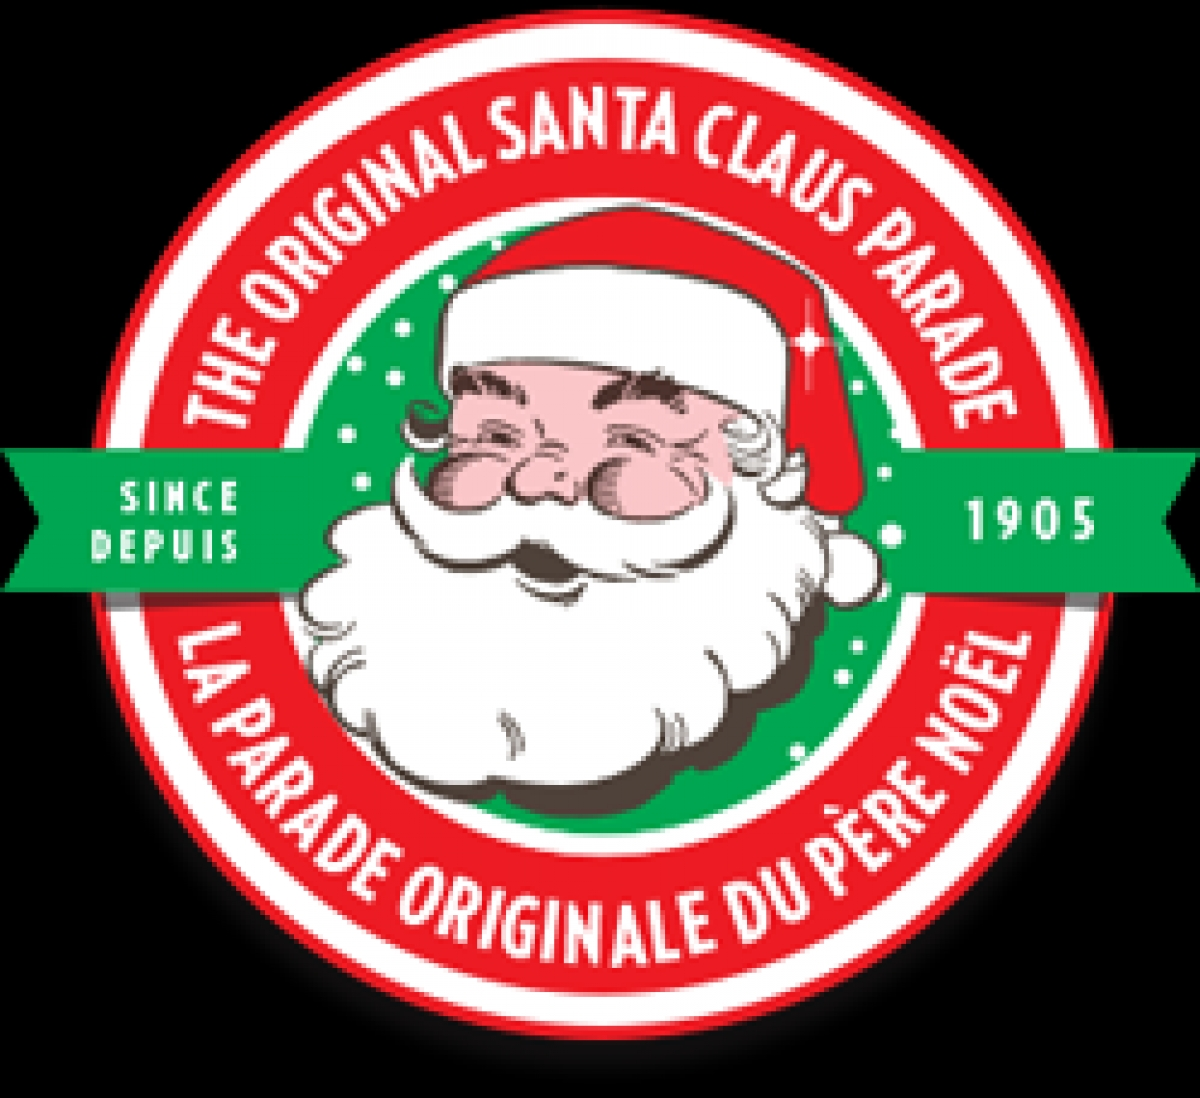 Santa Claus Parade Sunday, November 17, 2019